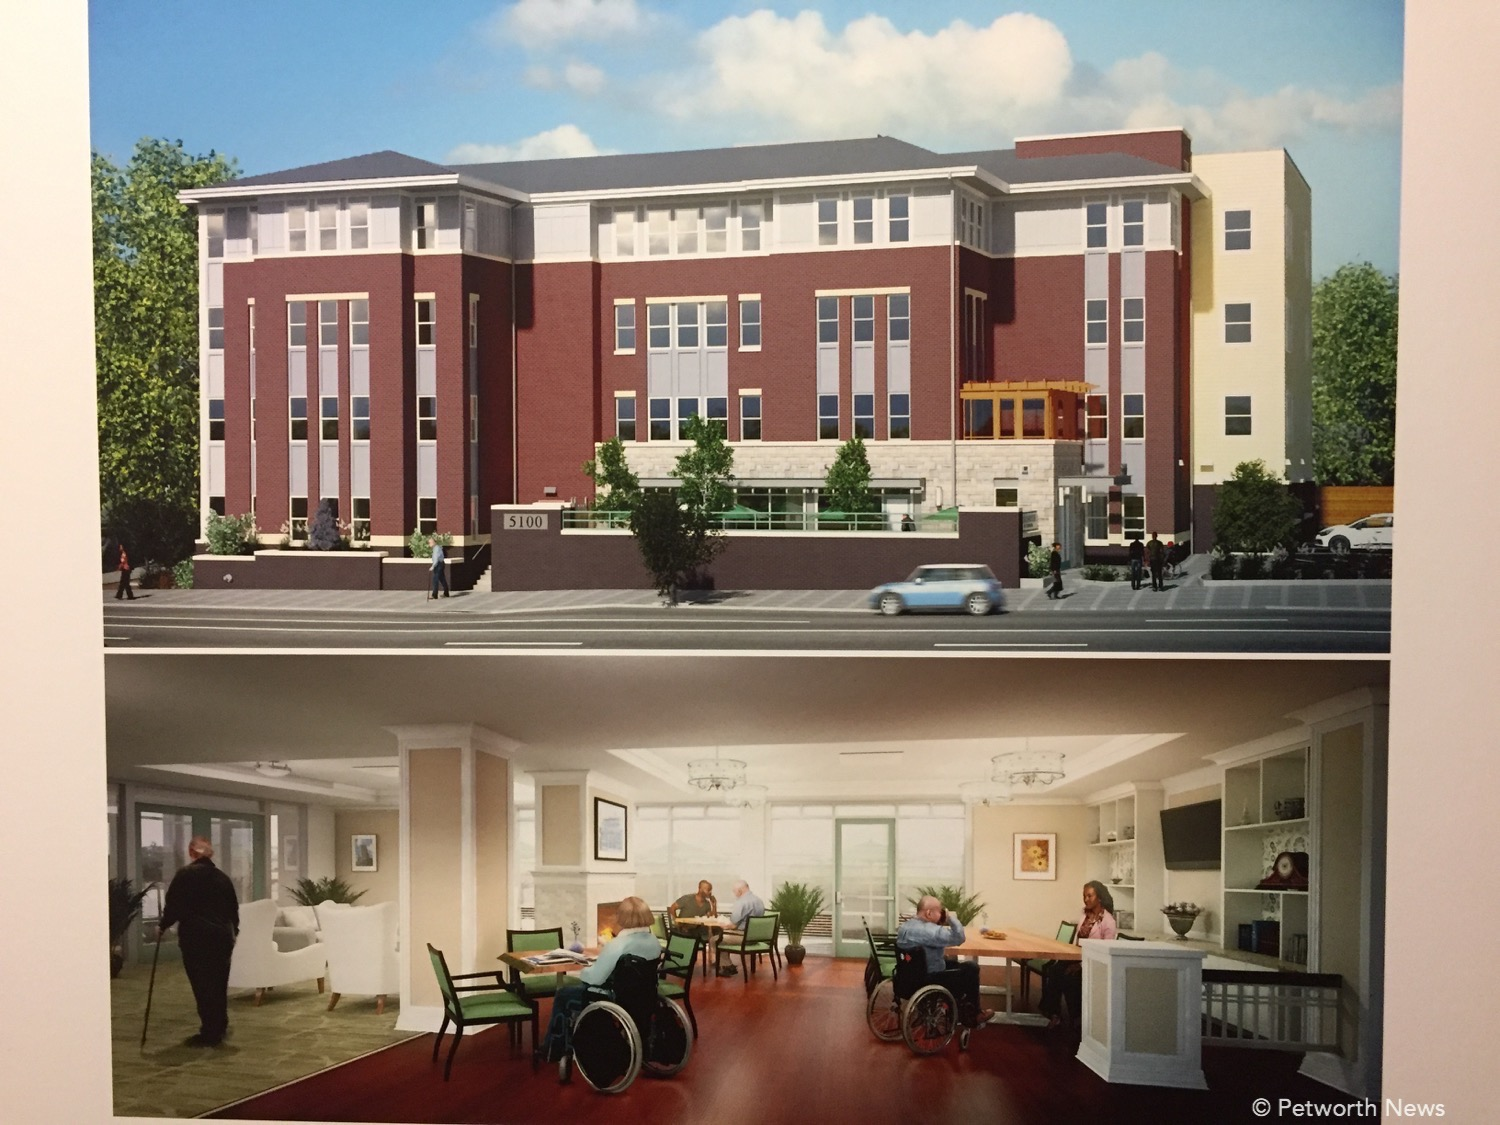 Proposed rendering of the Assisted Living building at 5100 Georgia Avenue NW